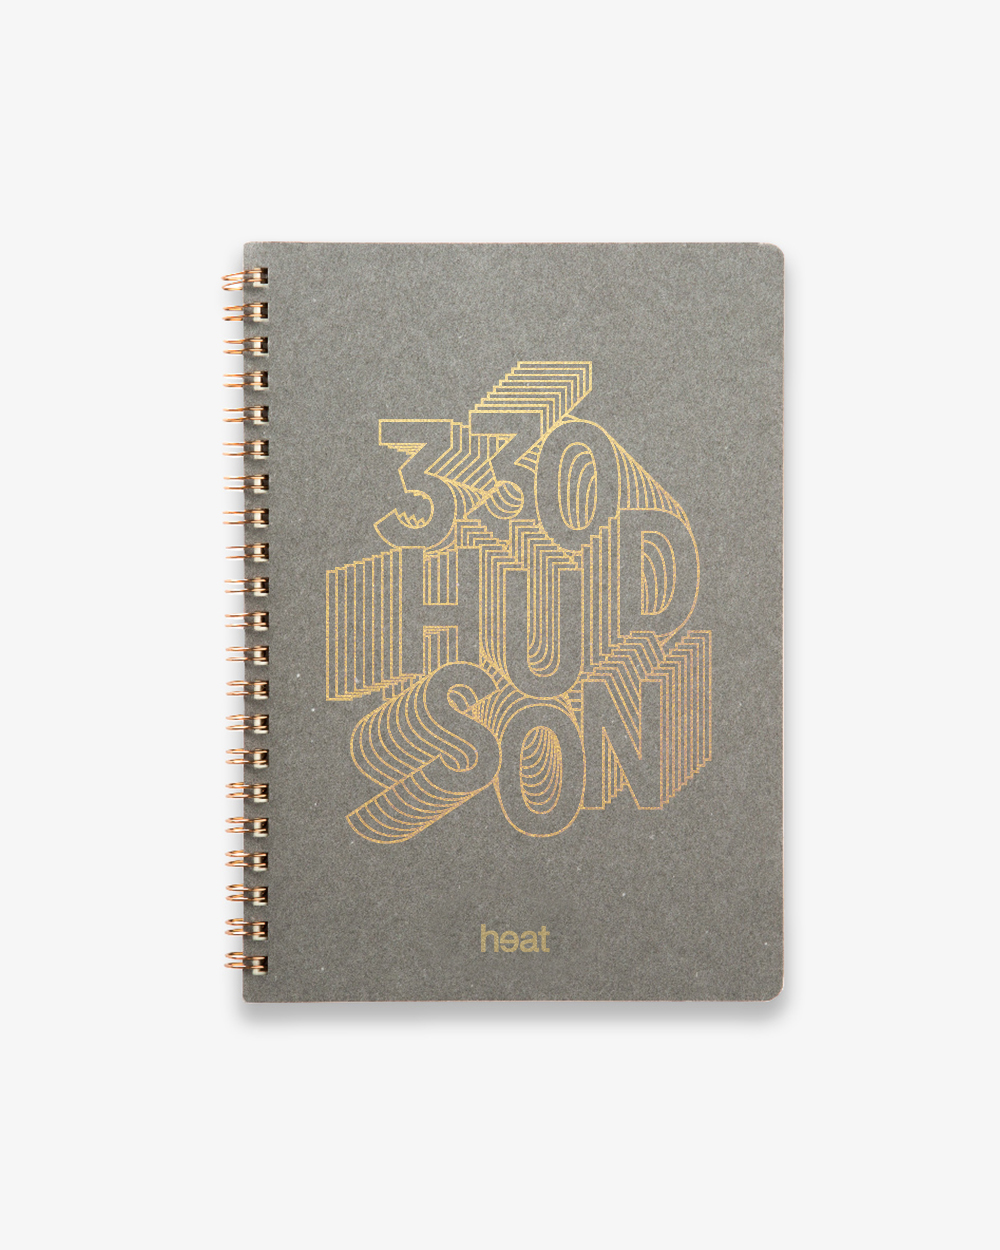 swag_notebook_gold_hudson.jpg